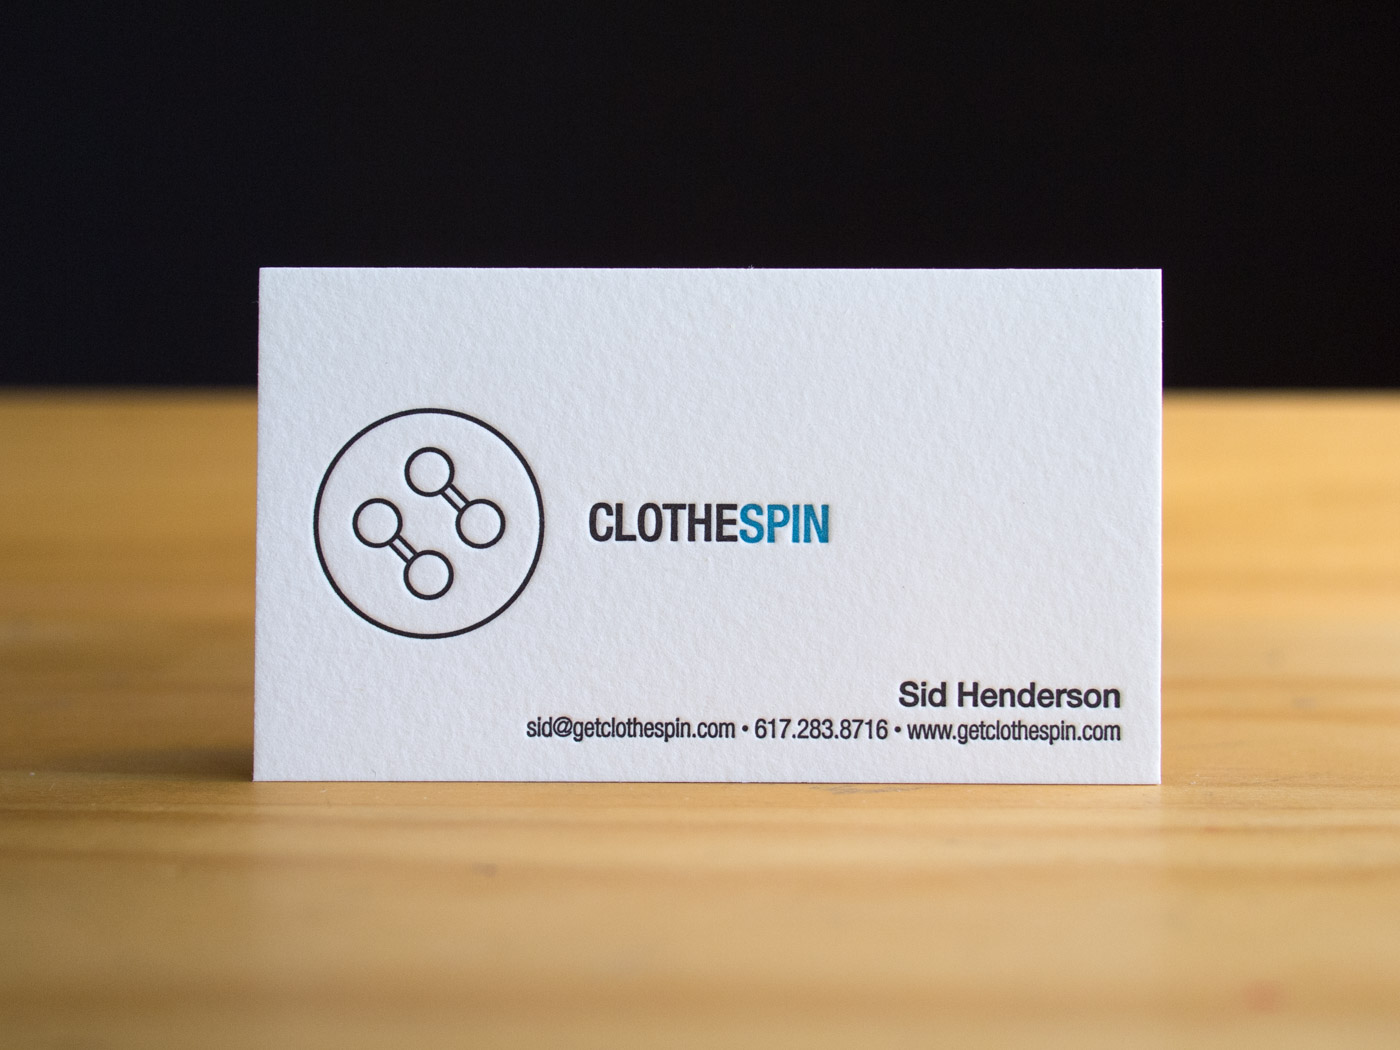 Clothespin | Printed by Parklife Press